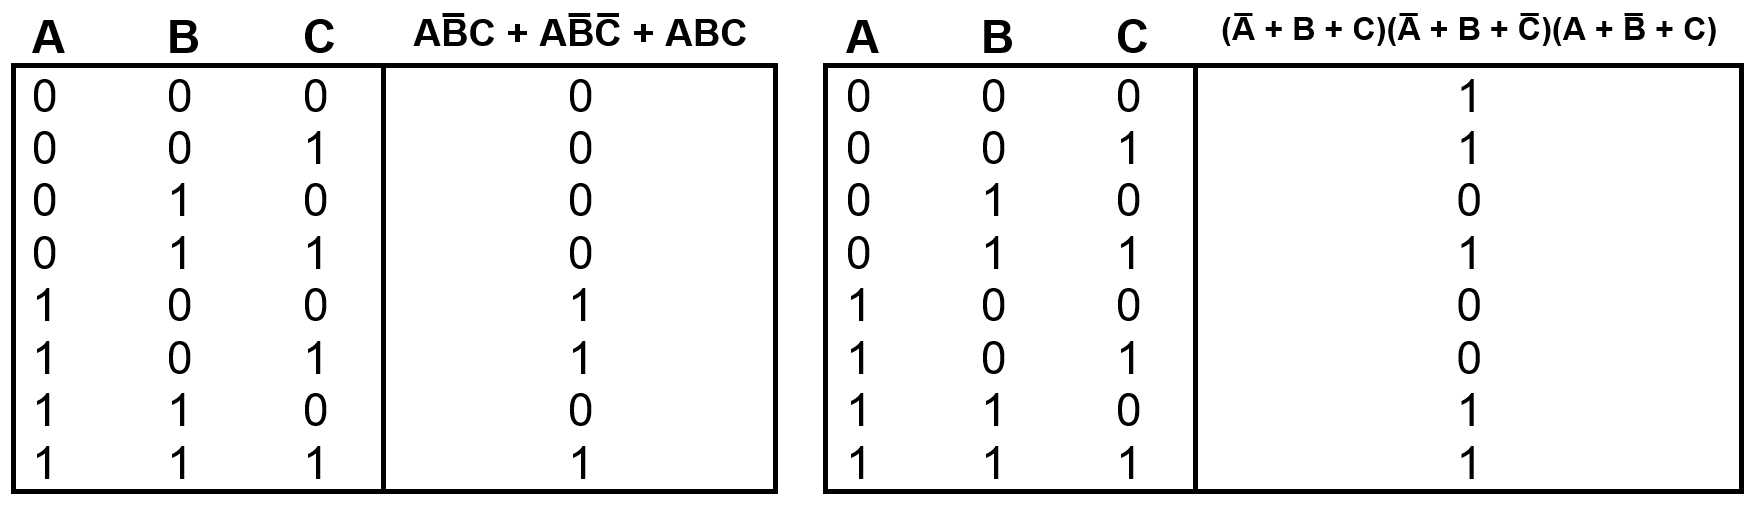 Table3